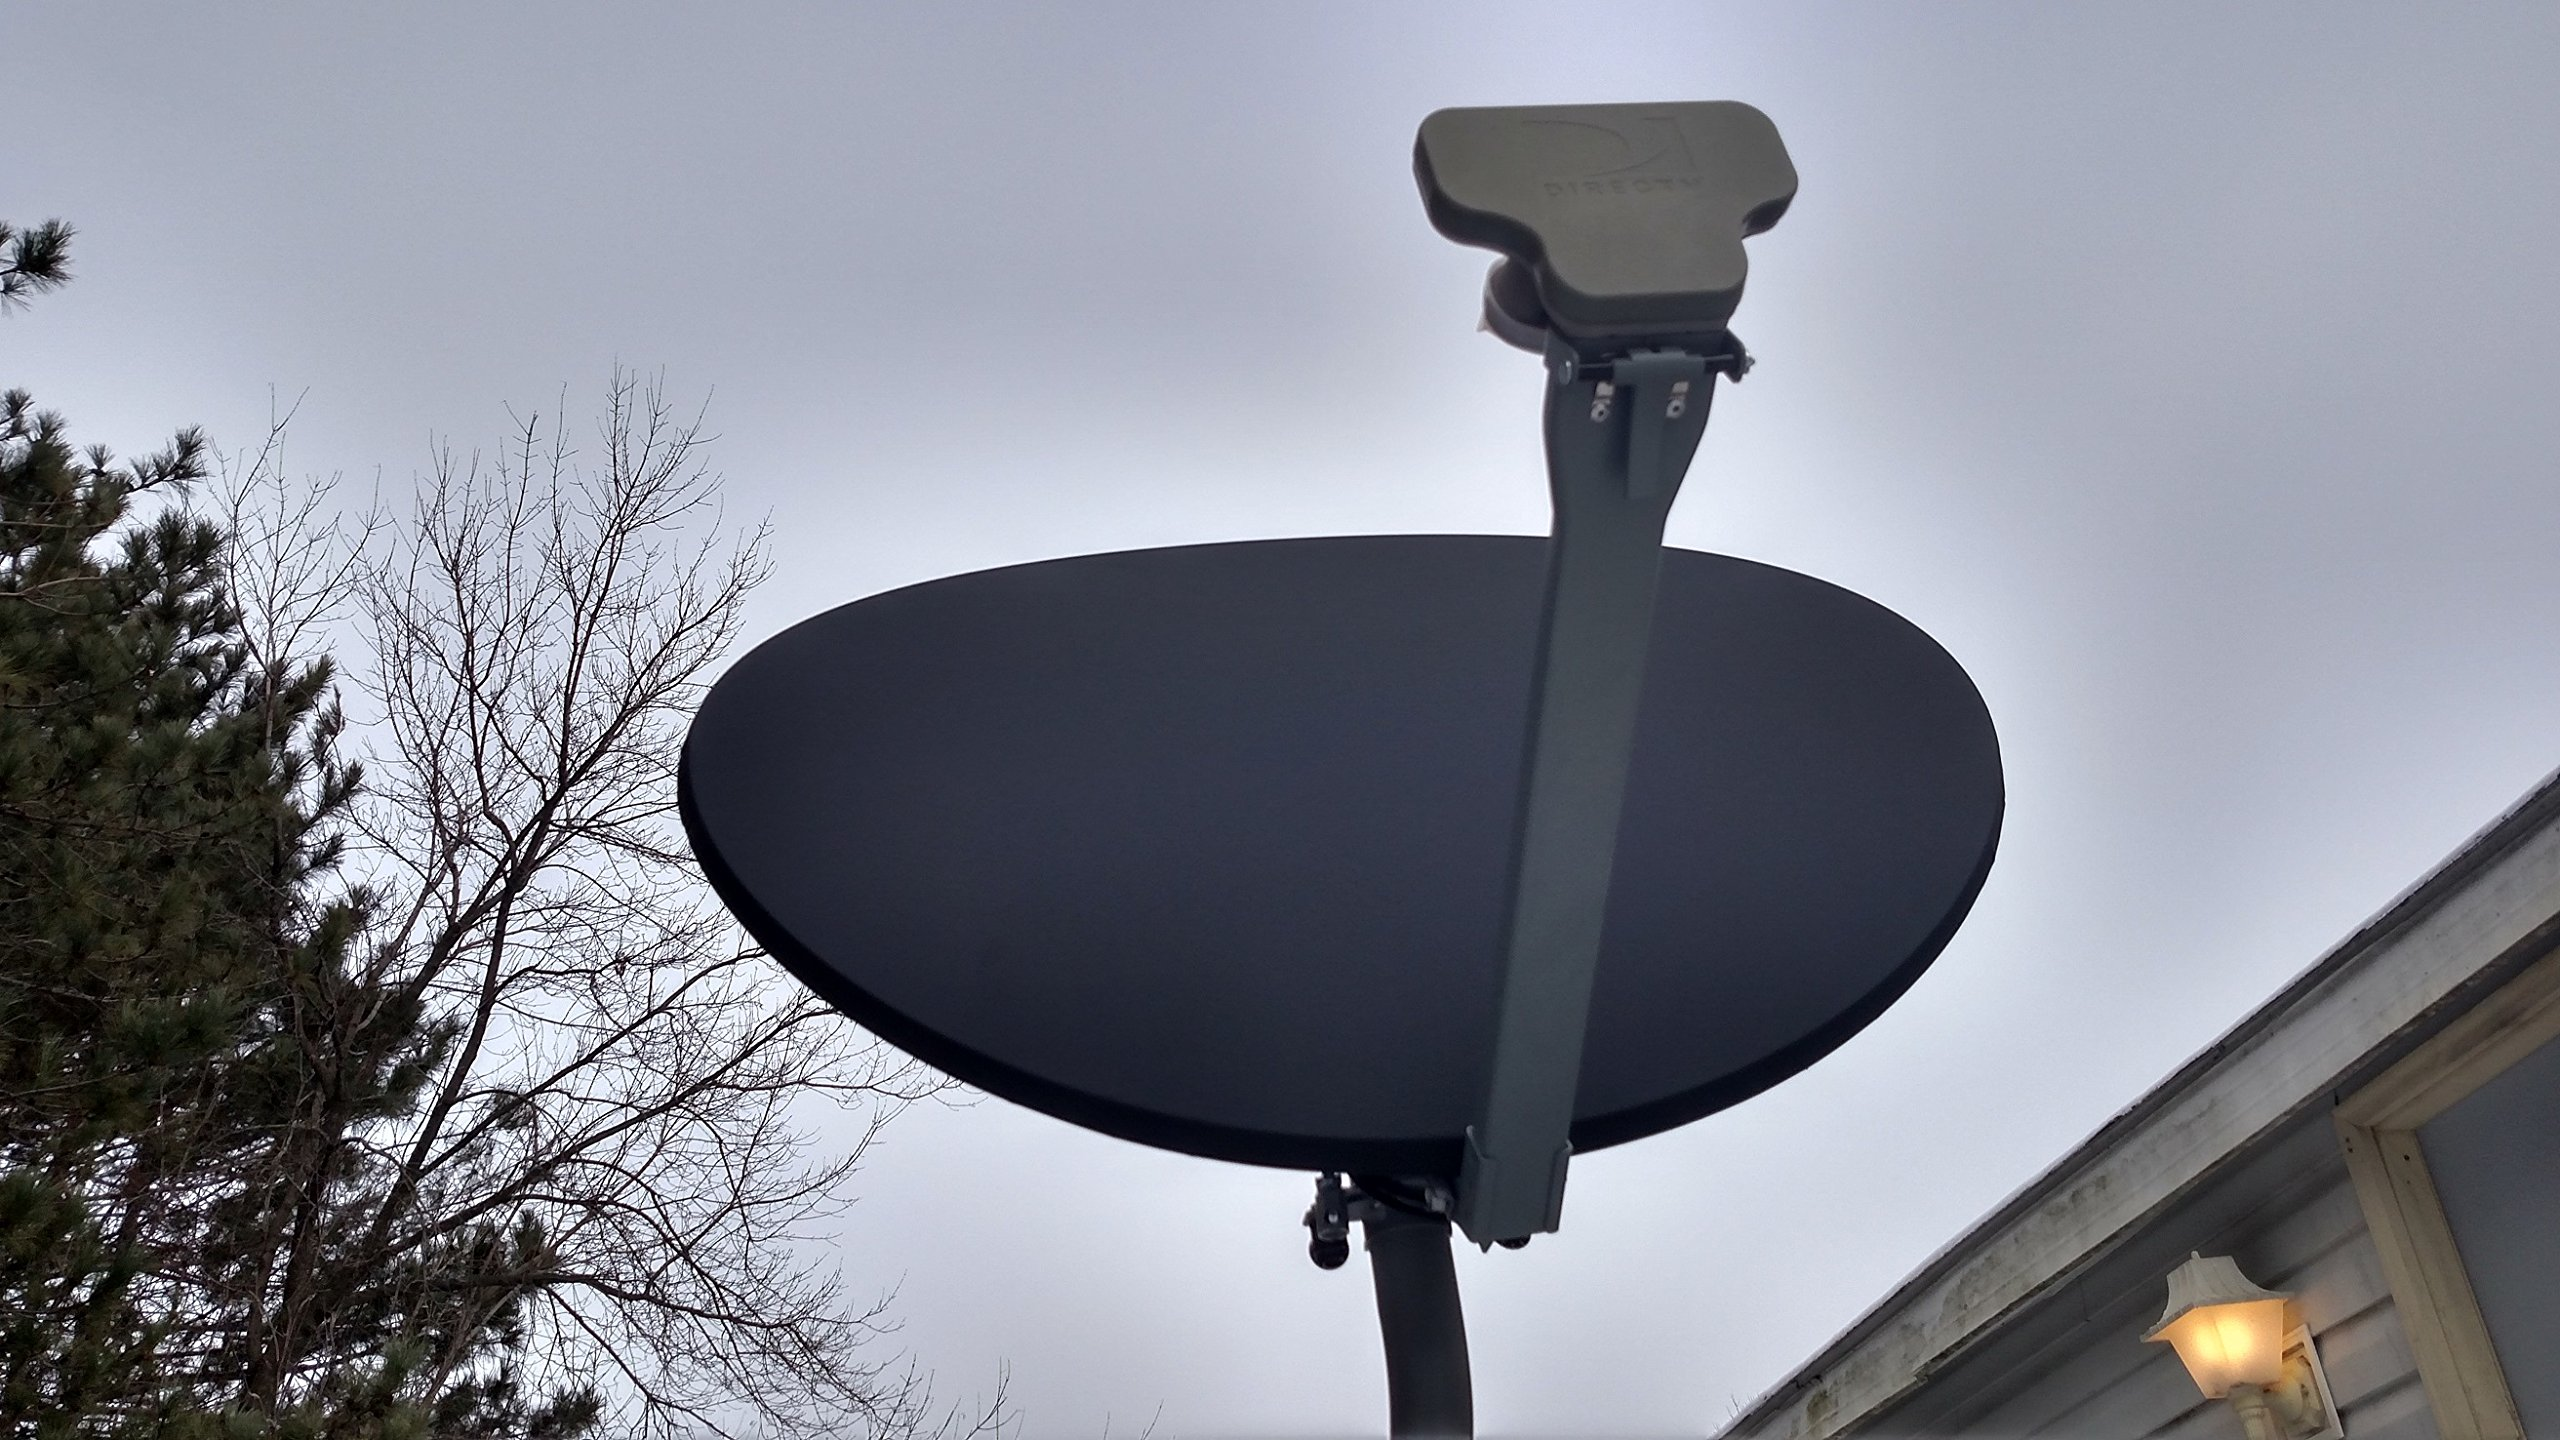 (BLACK) Satellite Dish Cover - Snow and Ice Protection for Directv, Dish Network, Shaw Direct, and Bell by Dish Armor